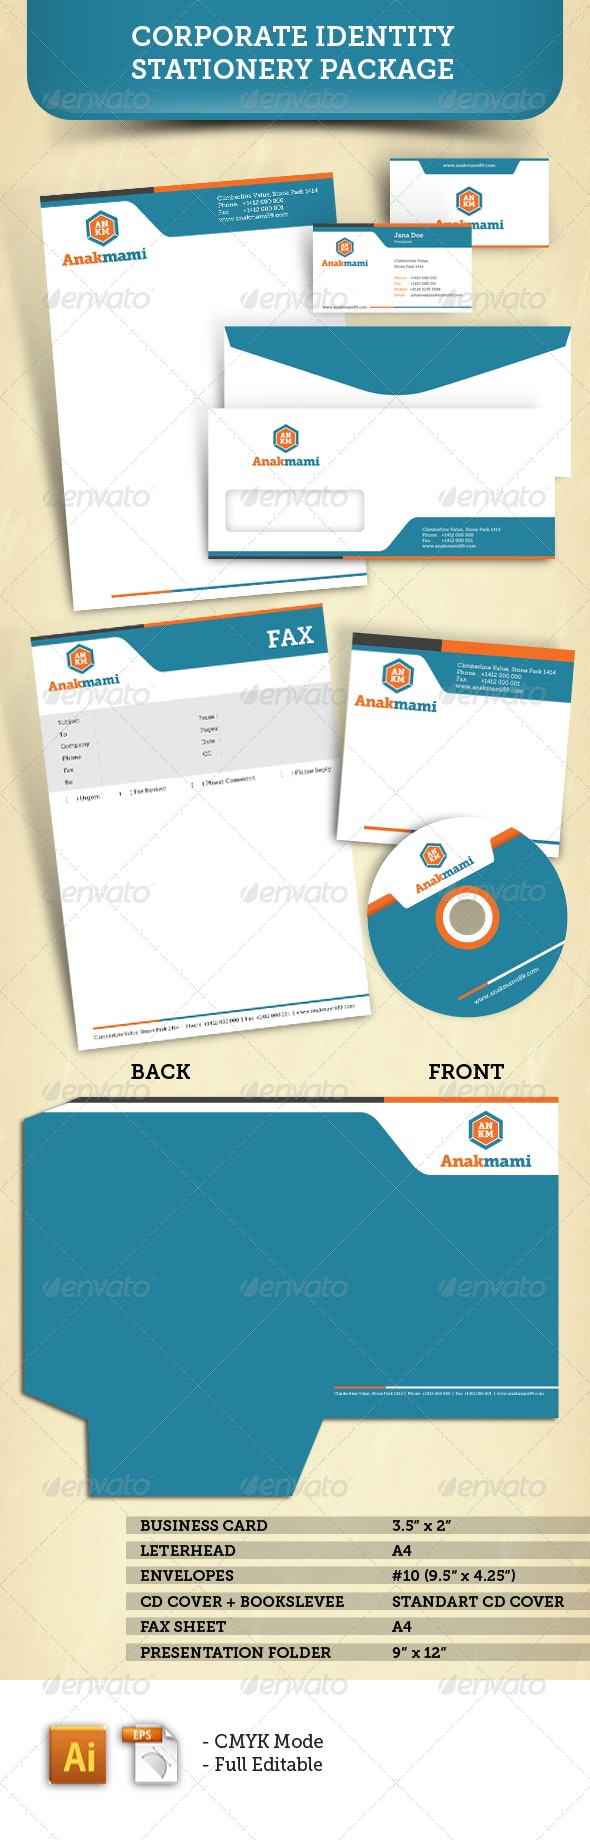 Corporate Identity Stationery Package - Corporate Business Cards